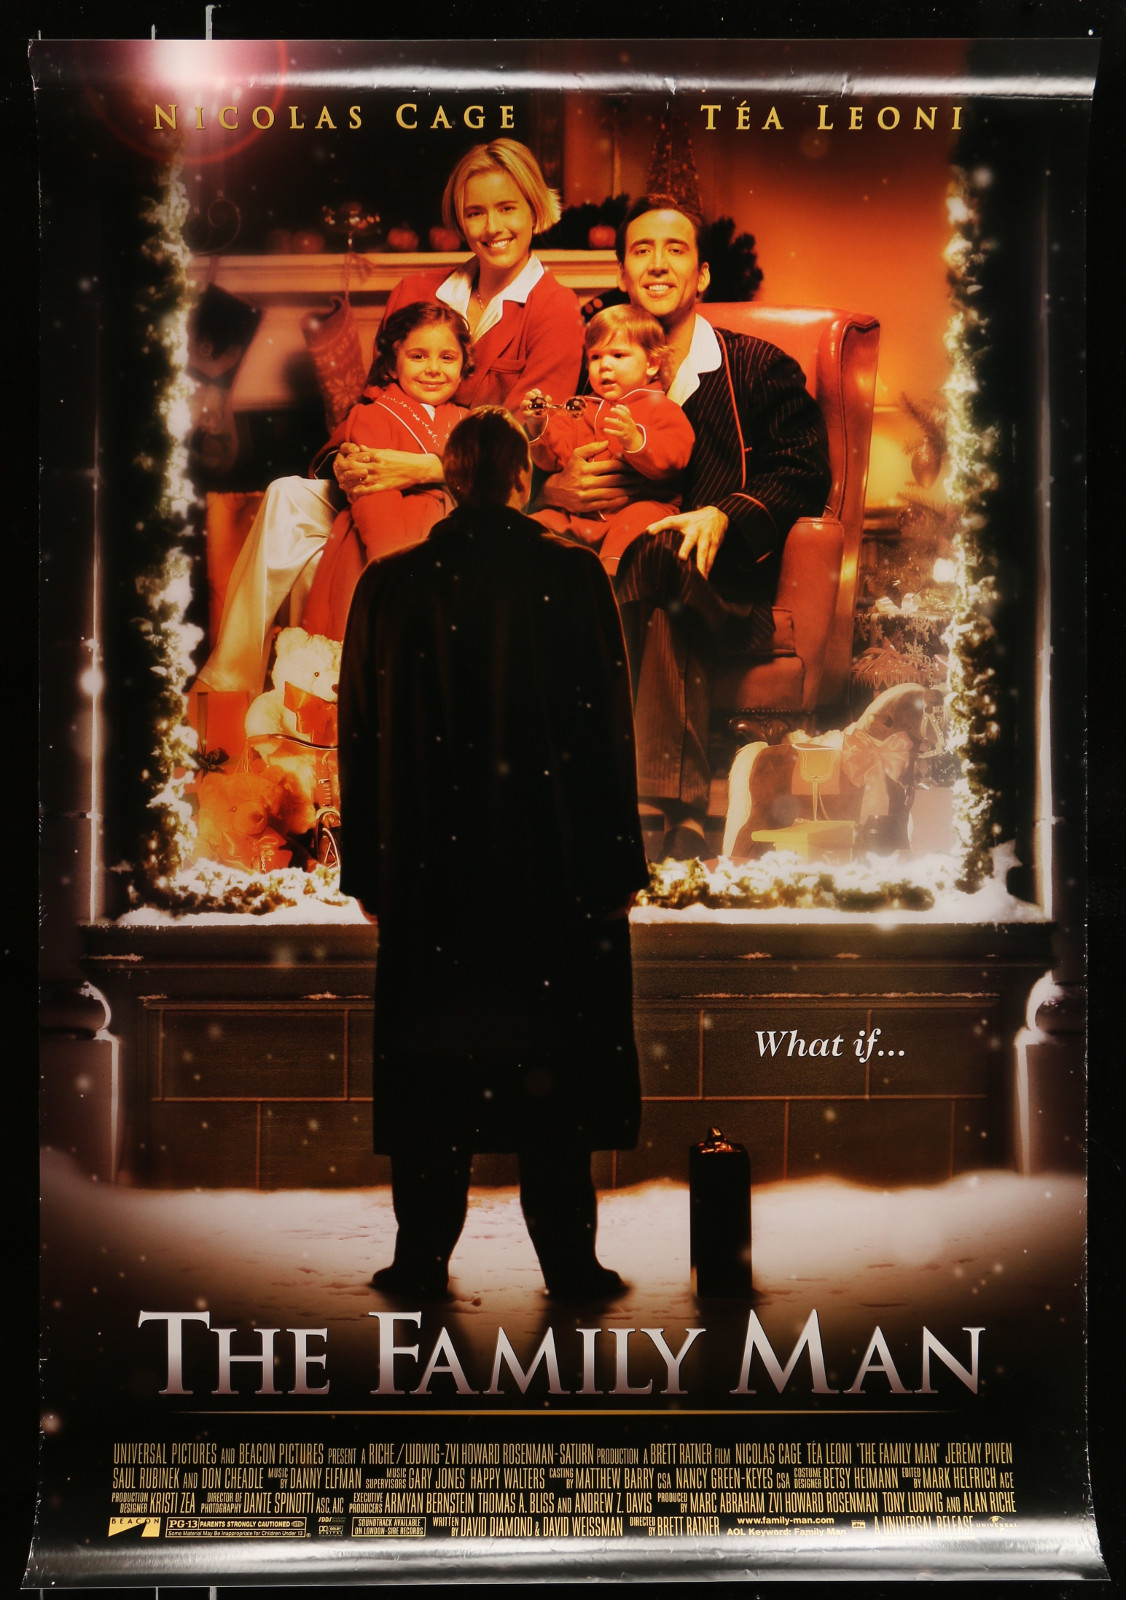 The Family Man 2A413 A Part Of A Lot 20 Unfolded Mostly Double-Sided 27X40 One-Sheets '90S-00S Great Movie Images!